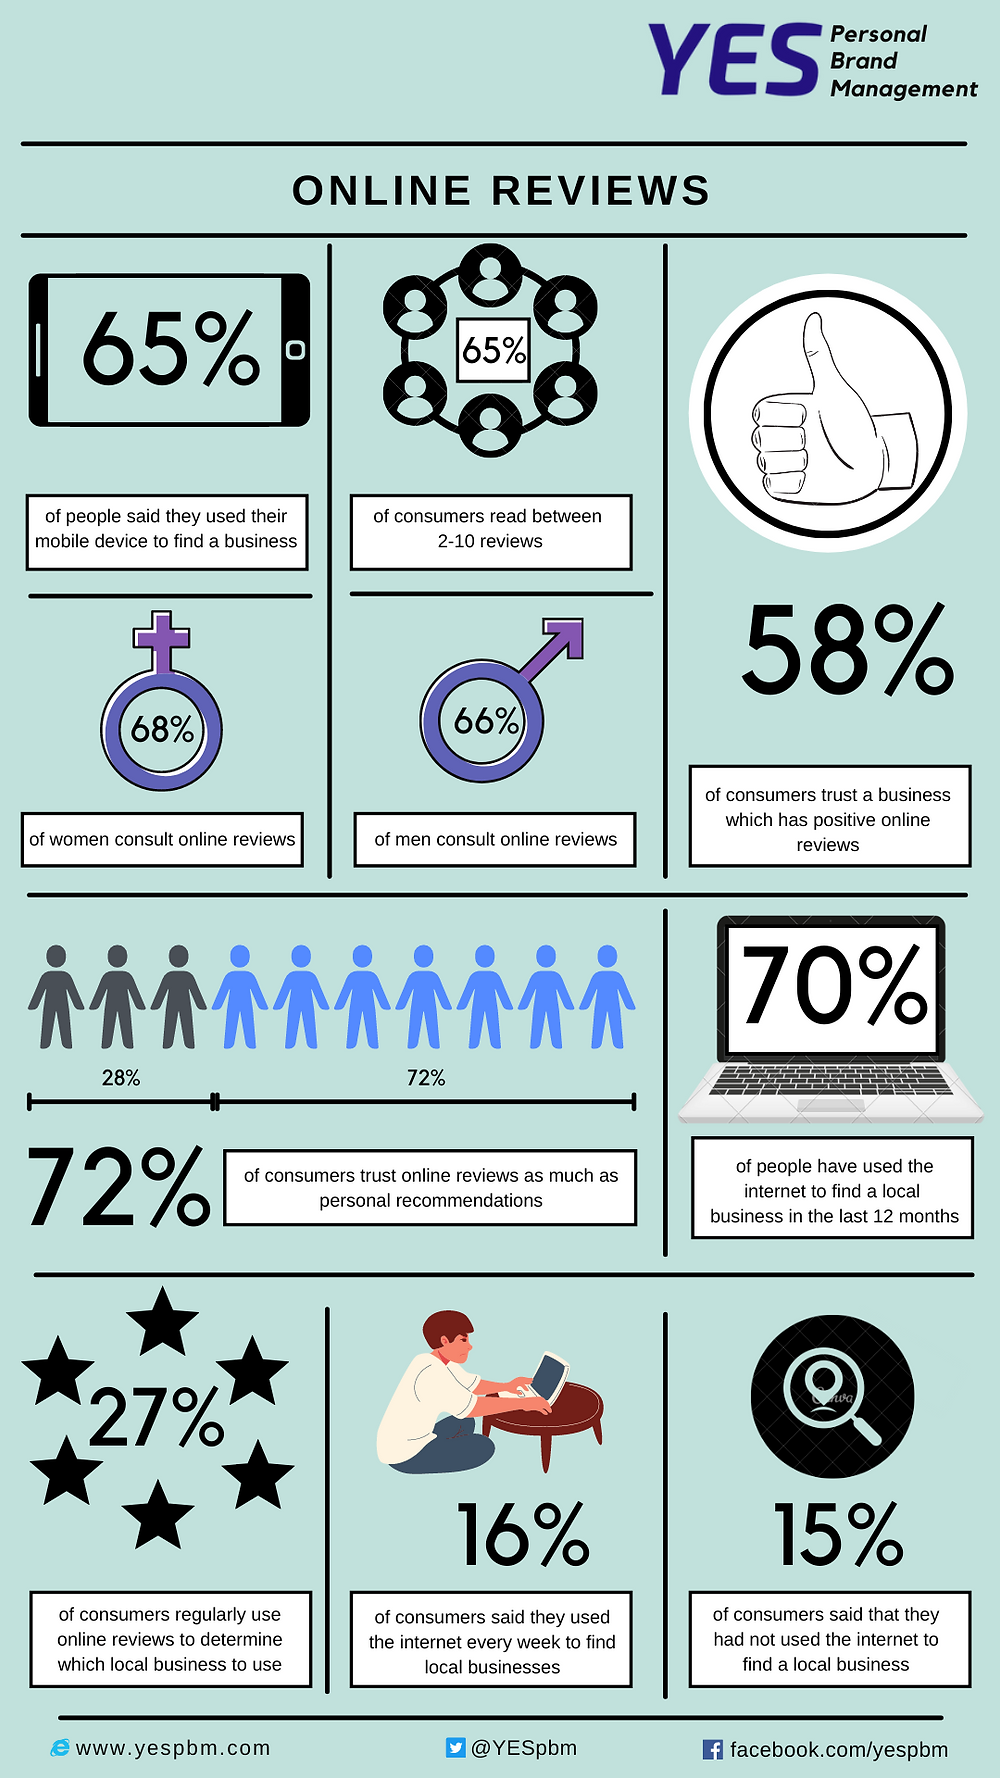 Infographic/Picture of online reviews affecting medical professionals/Doctors by YESpbm